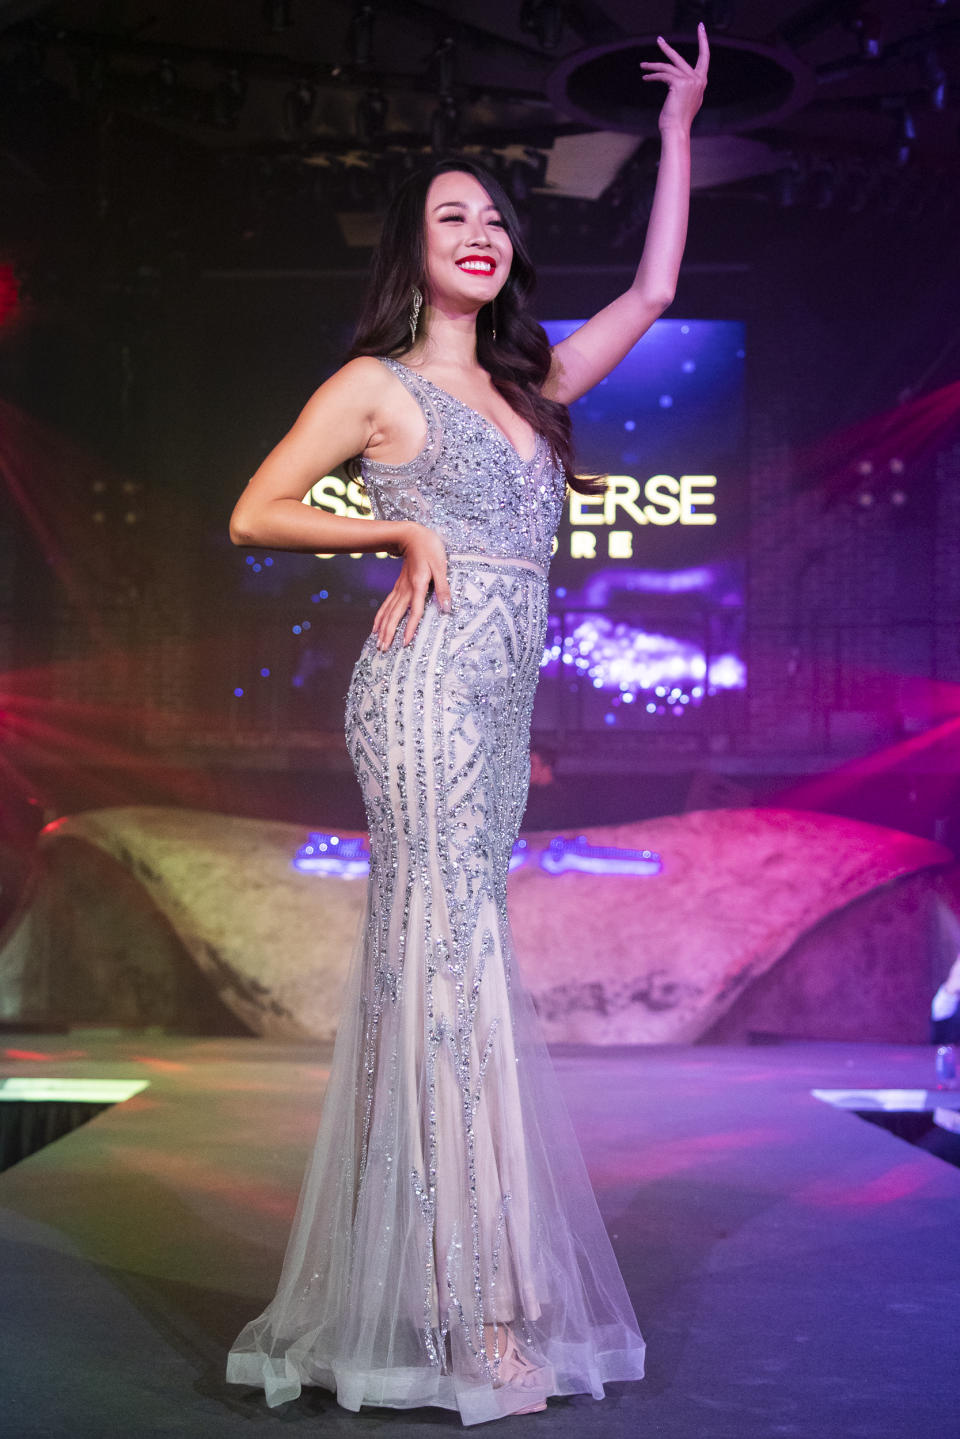 Cheryl Yao competing in the evening gown segment during the 2019 Miss Universe Singapore at Zouk.